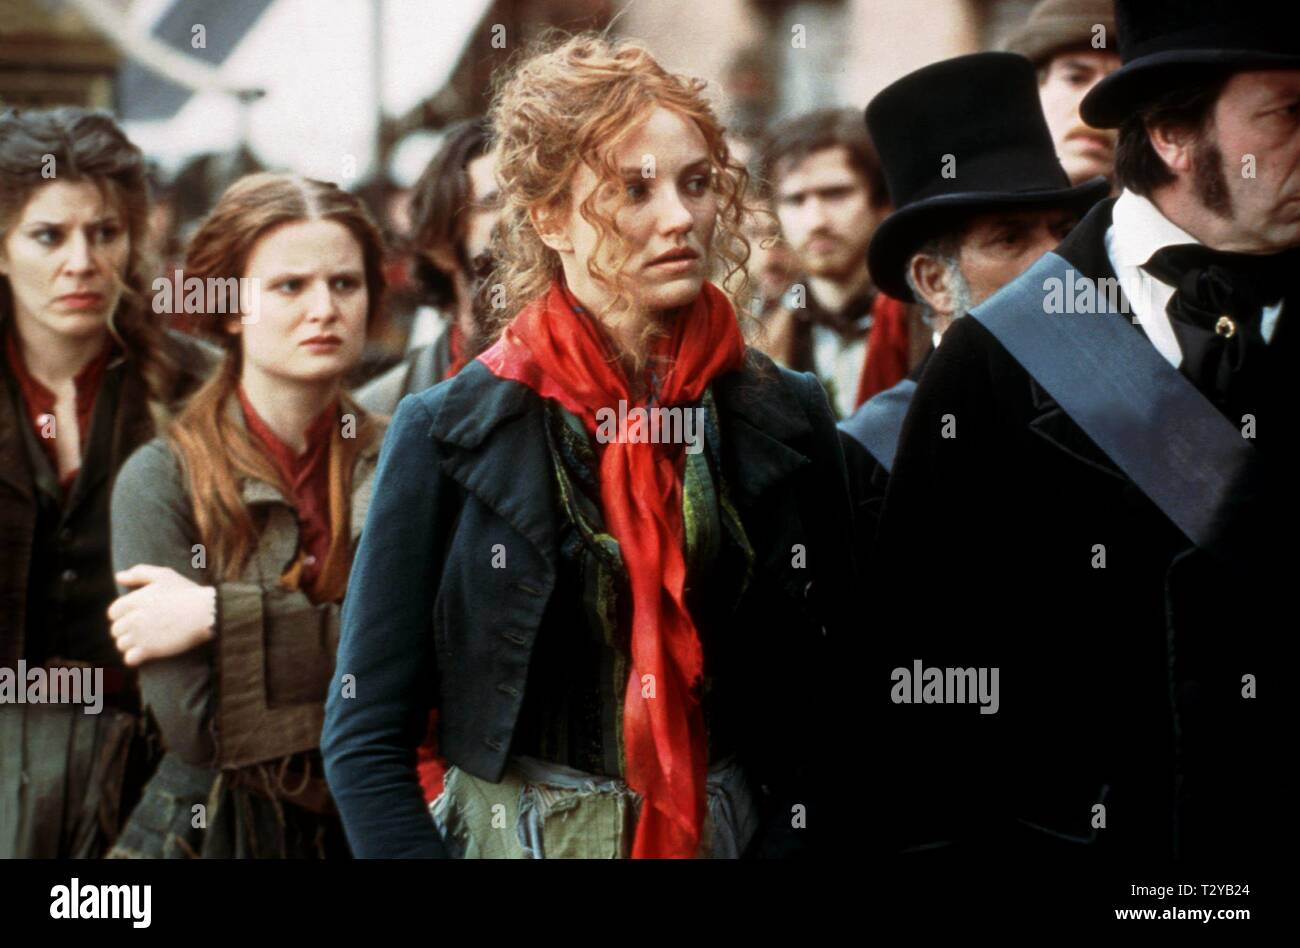 CAMERON DIAZ, GANGS OF NEW YORK, 2002 Stock Photo